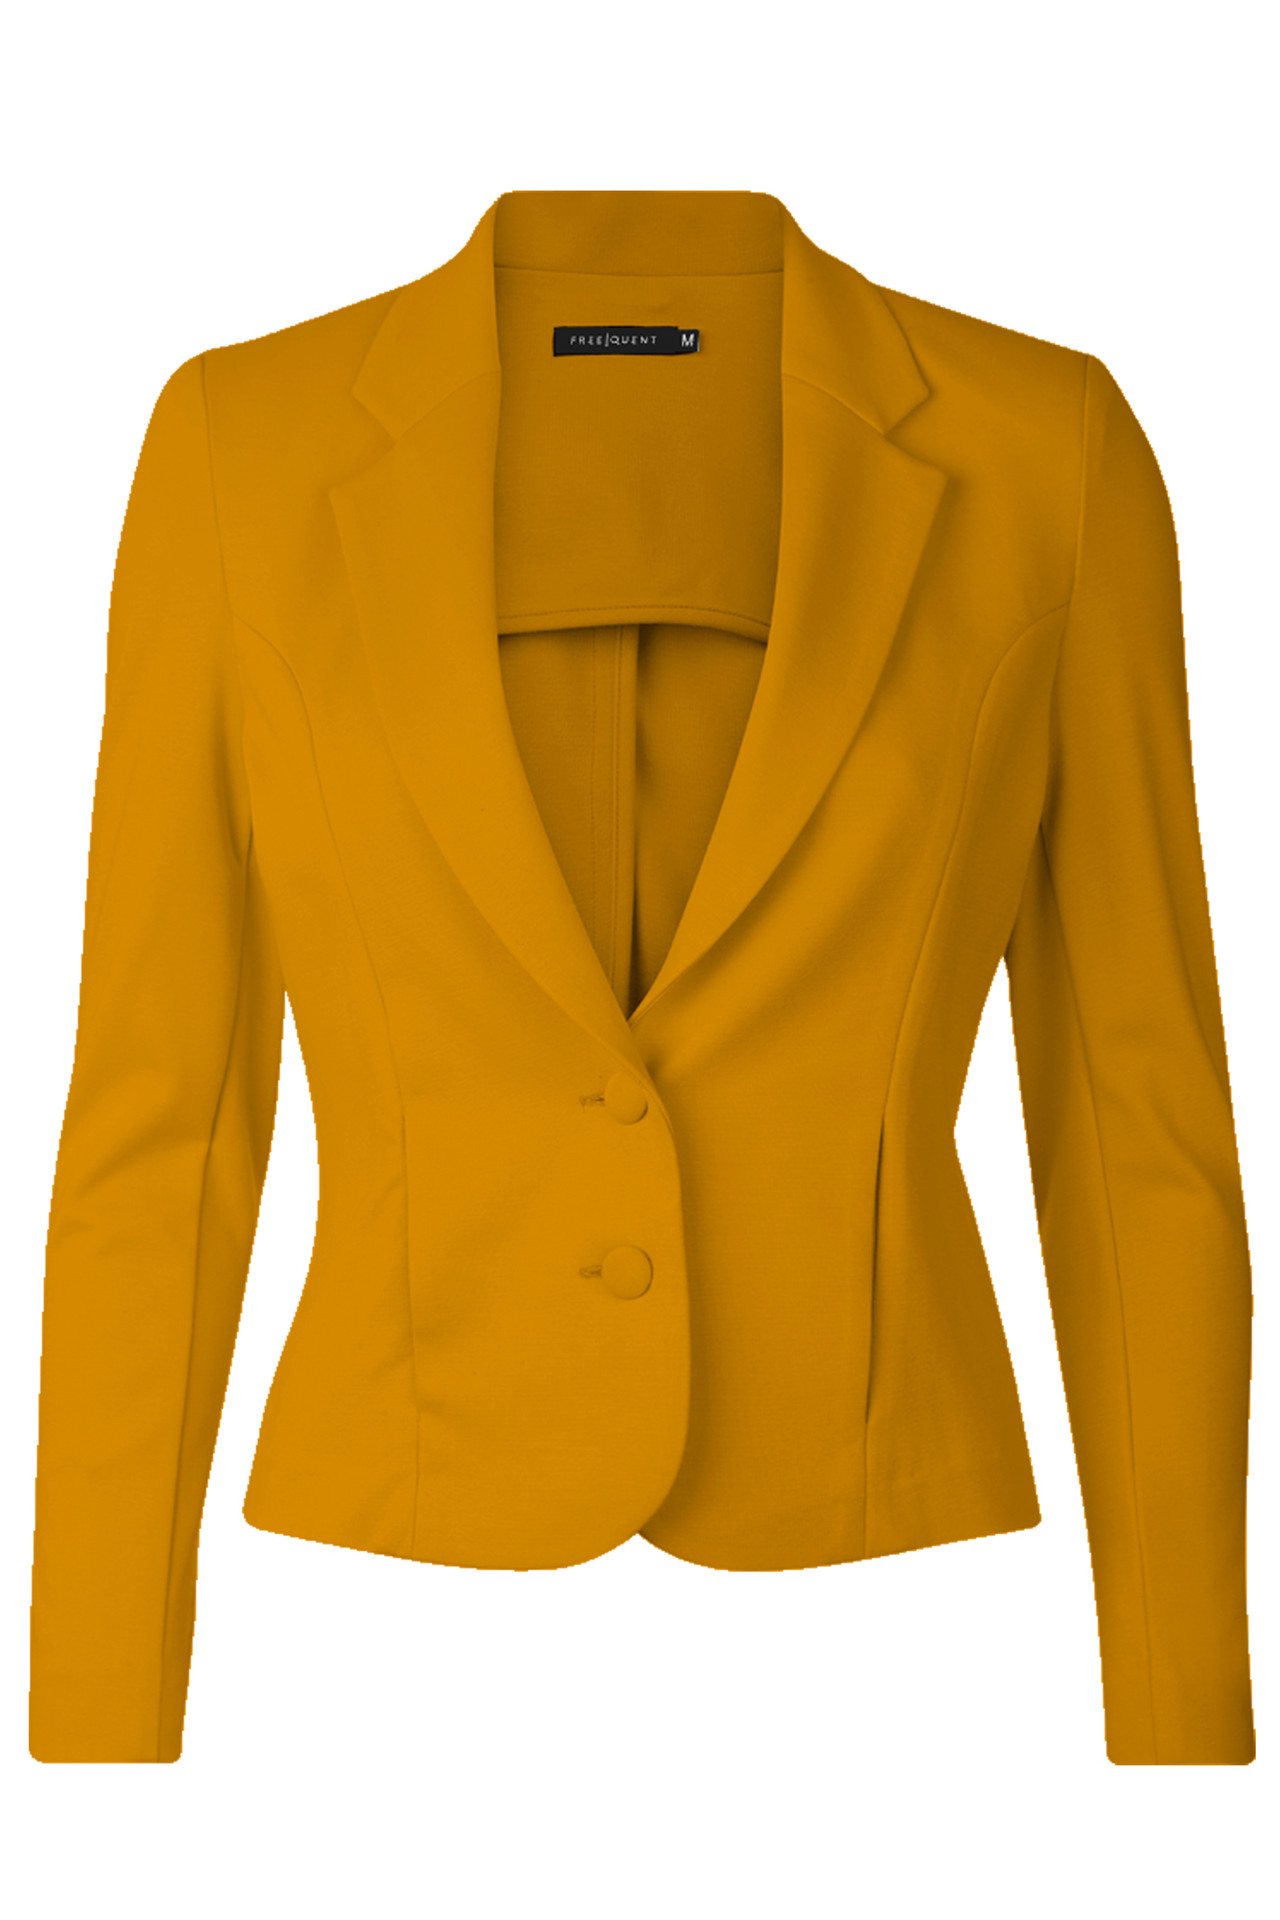 95ffe73f NANNI-JA BLAZER Golden Yellow fra FreeQuent.